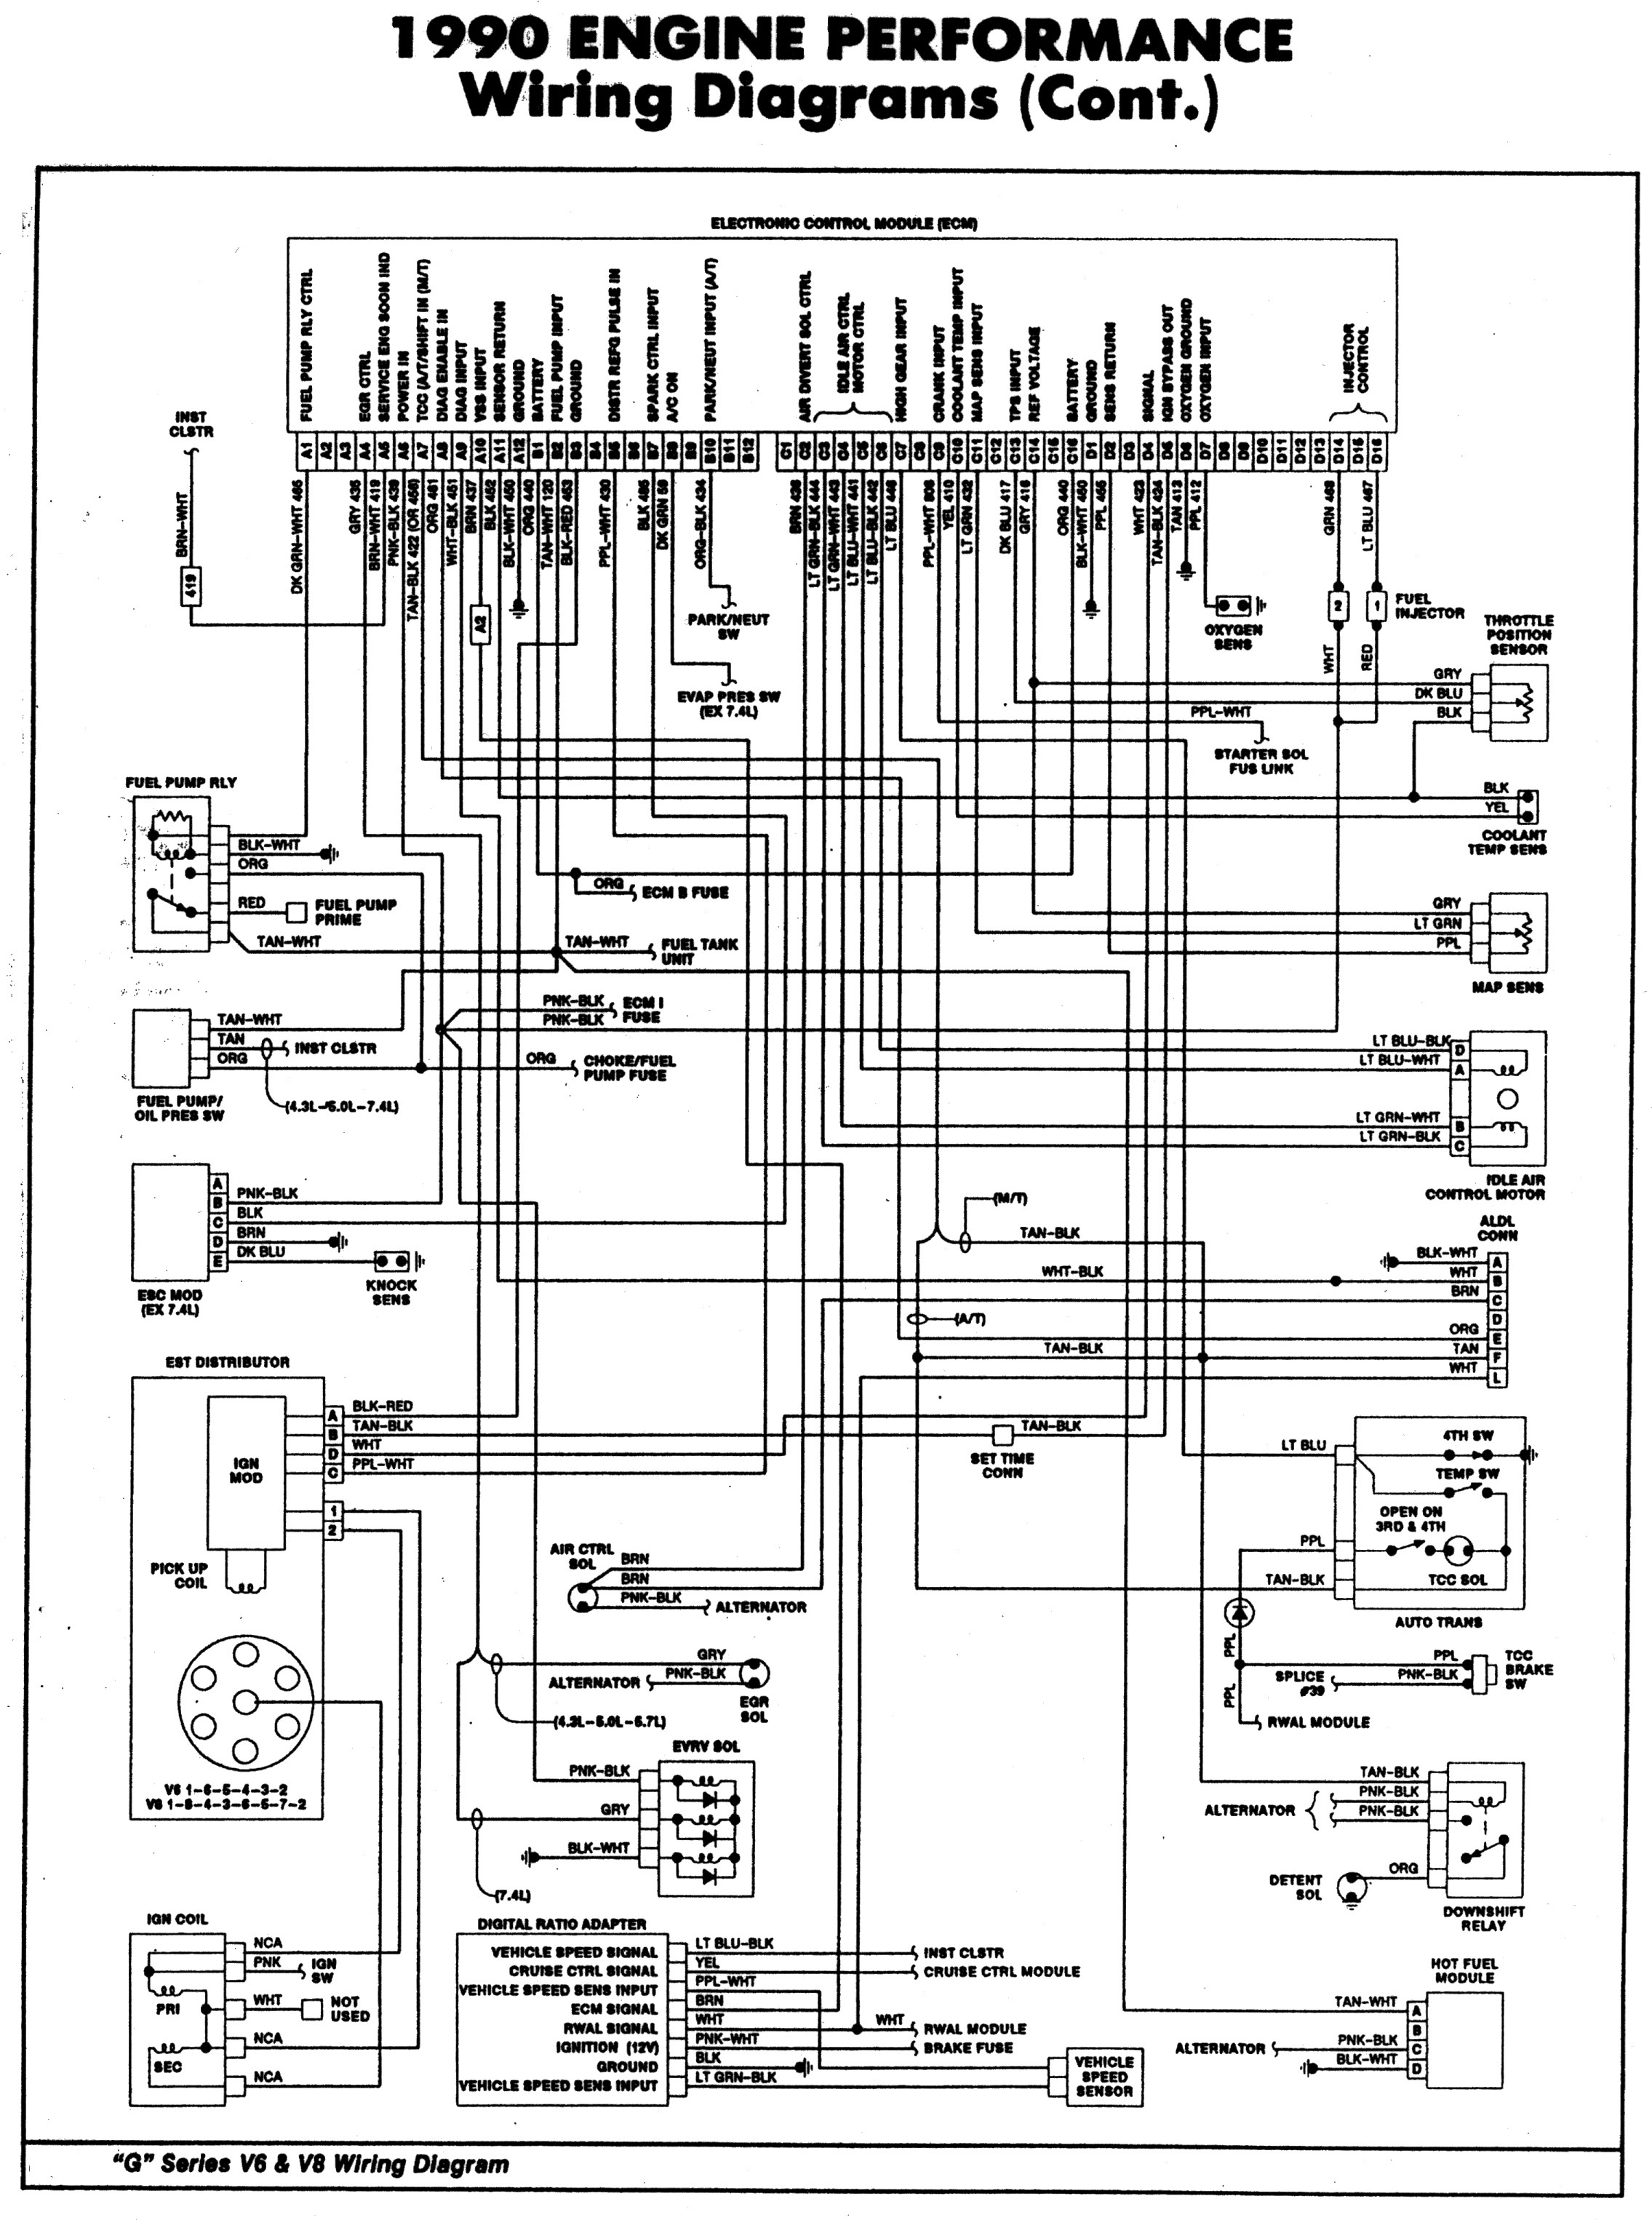 land cruiser sel wiring diagram data schematic diagramland cruiser sel wiring diagram wiring diagram ignitiondiagram 1990 [ 2271 x 3051 Pixel ]